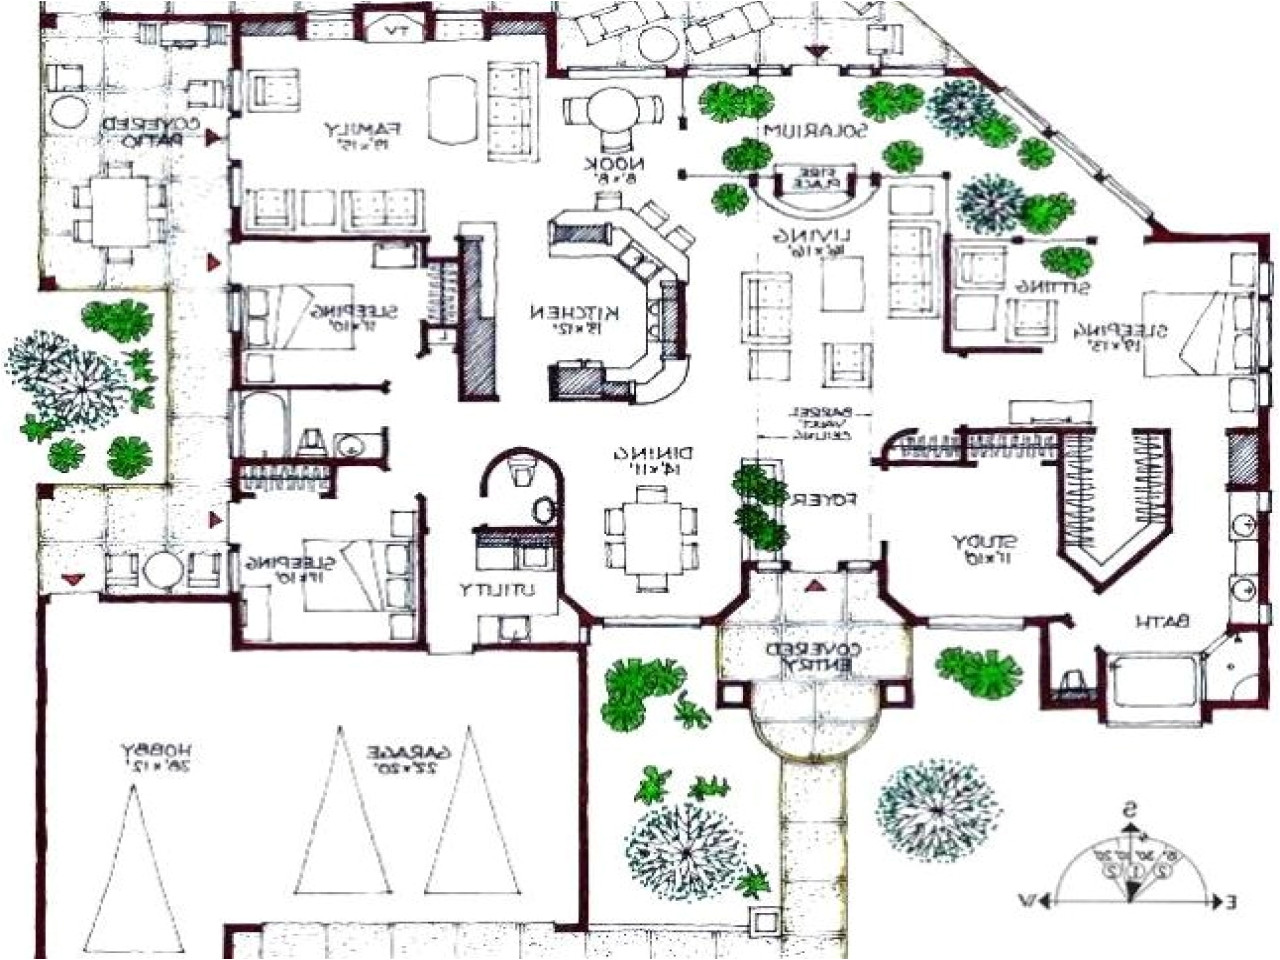 New Home Designs Floor Plans Modern Mansions Floor Plans Homes Floor Plans